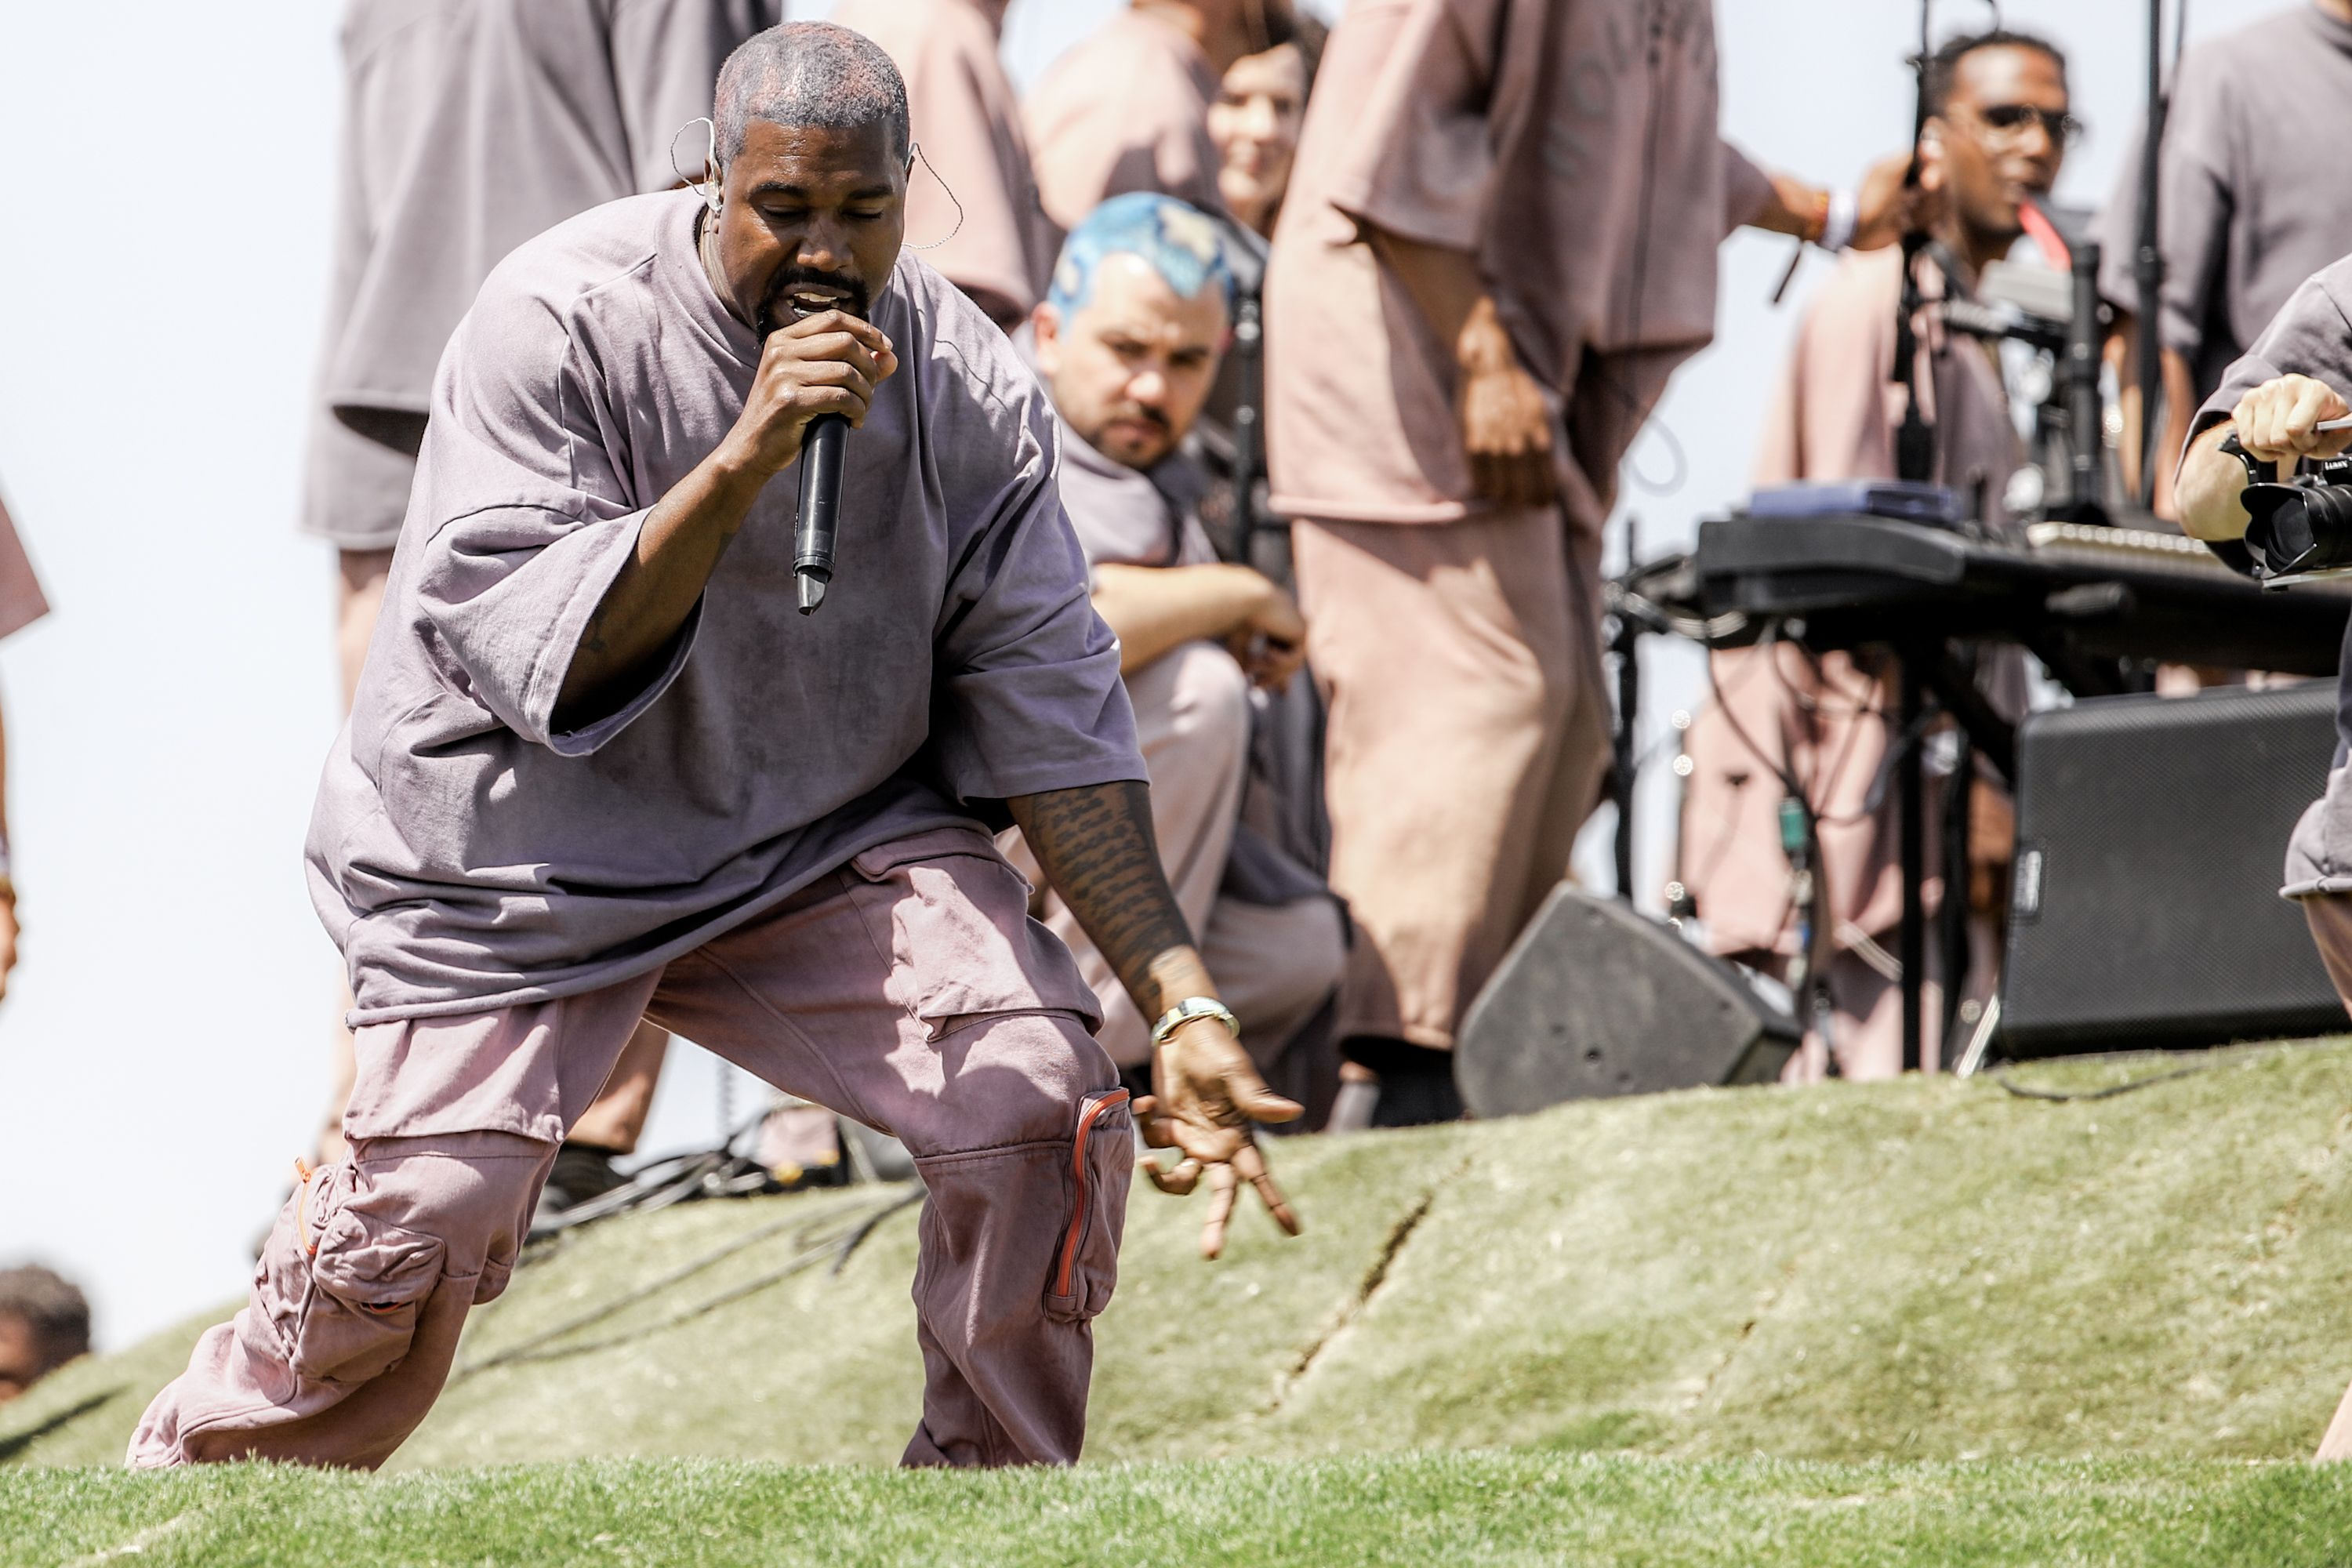 Kanye West Brought His Sunday Service Concert Back Home To Chicago